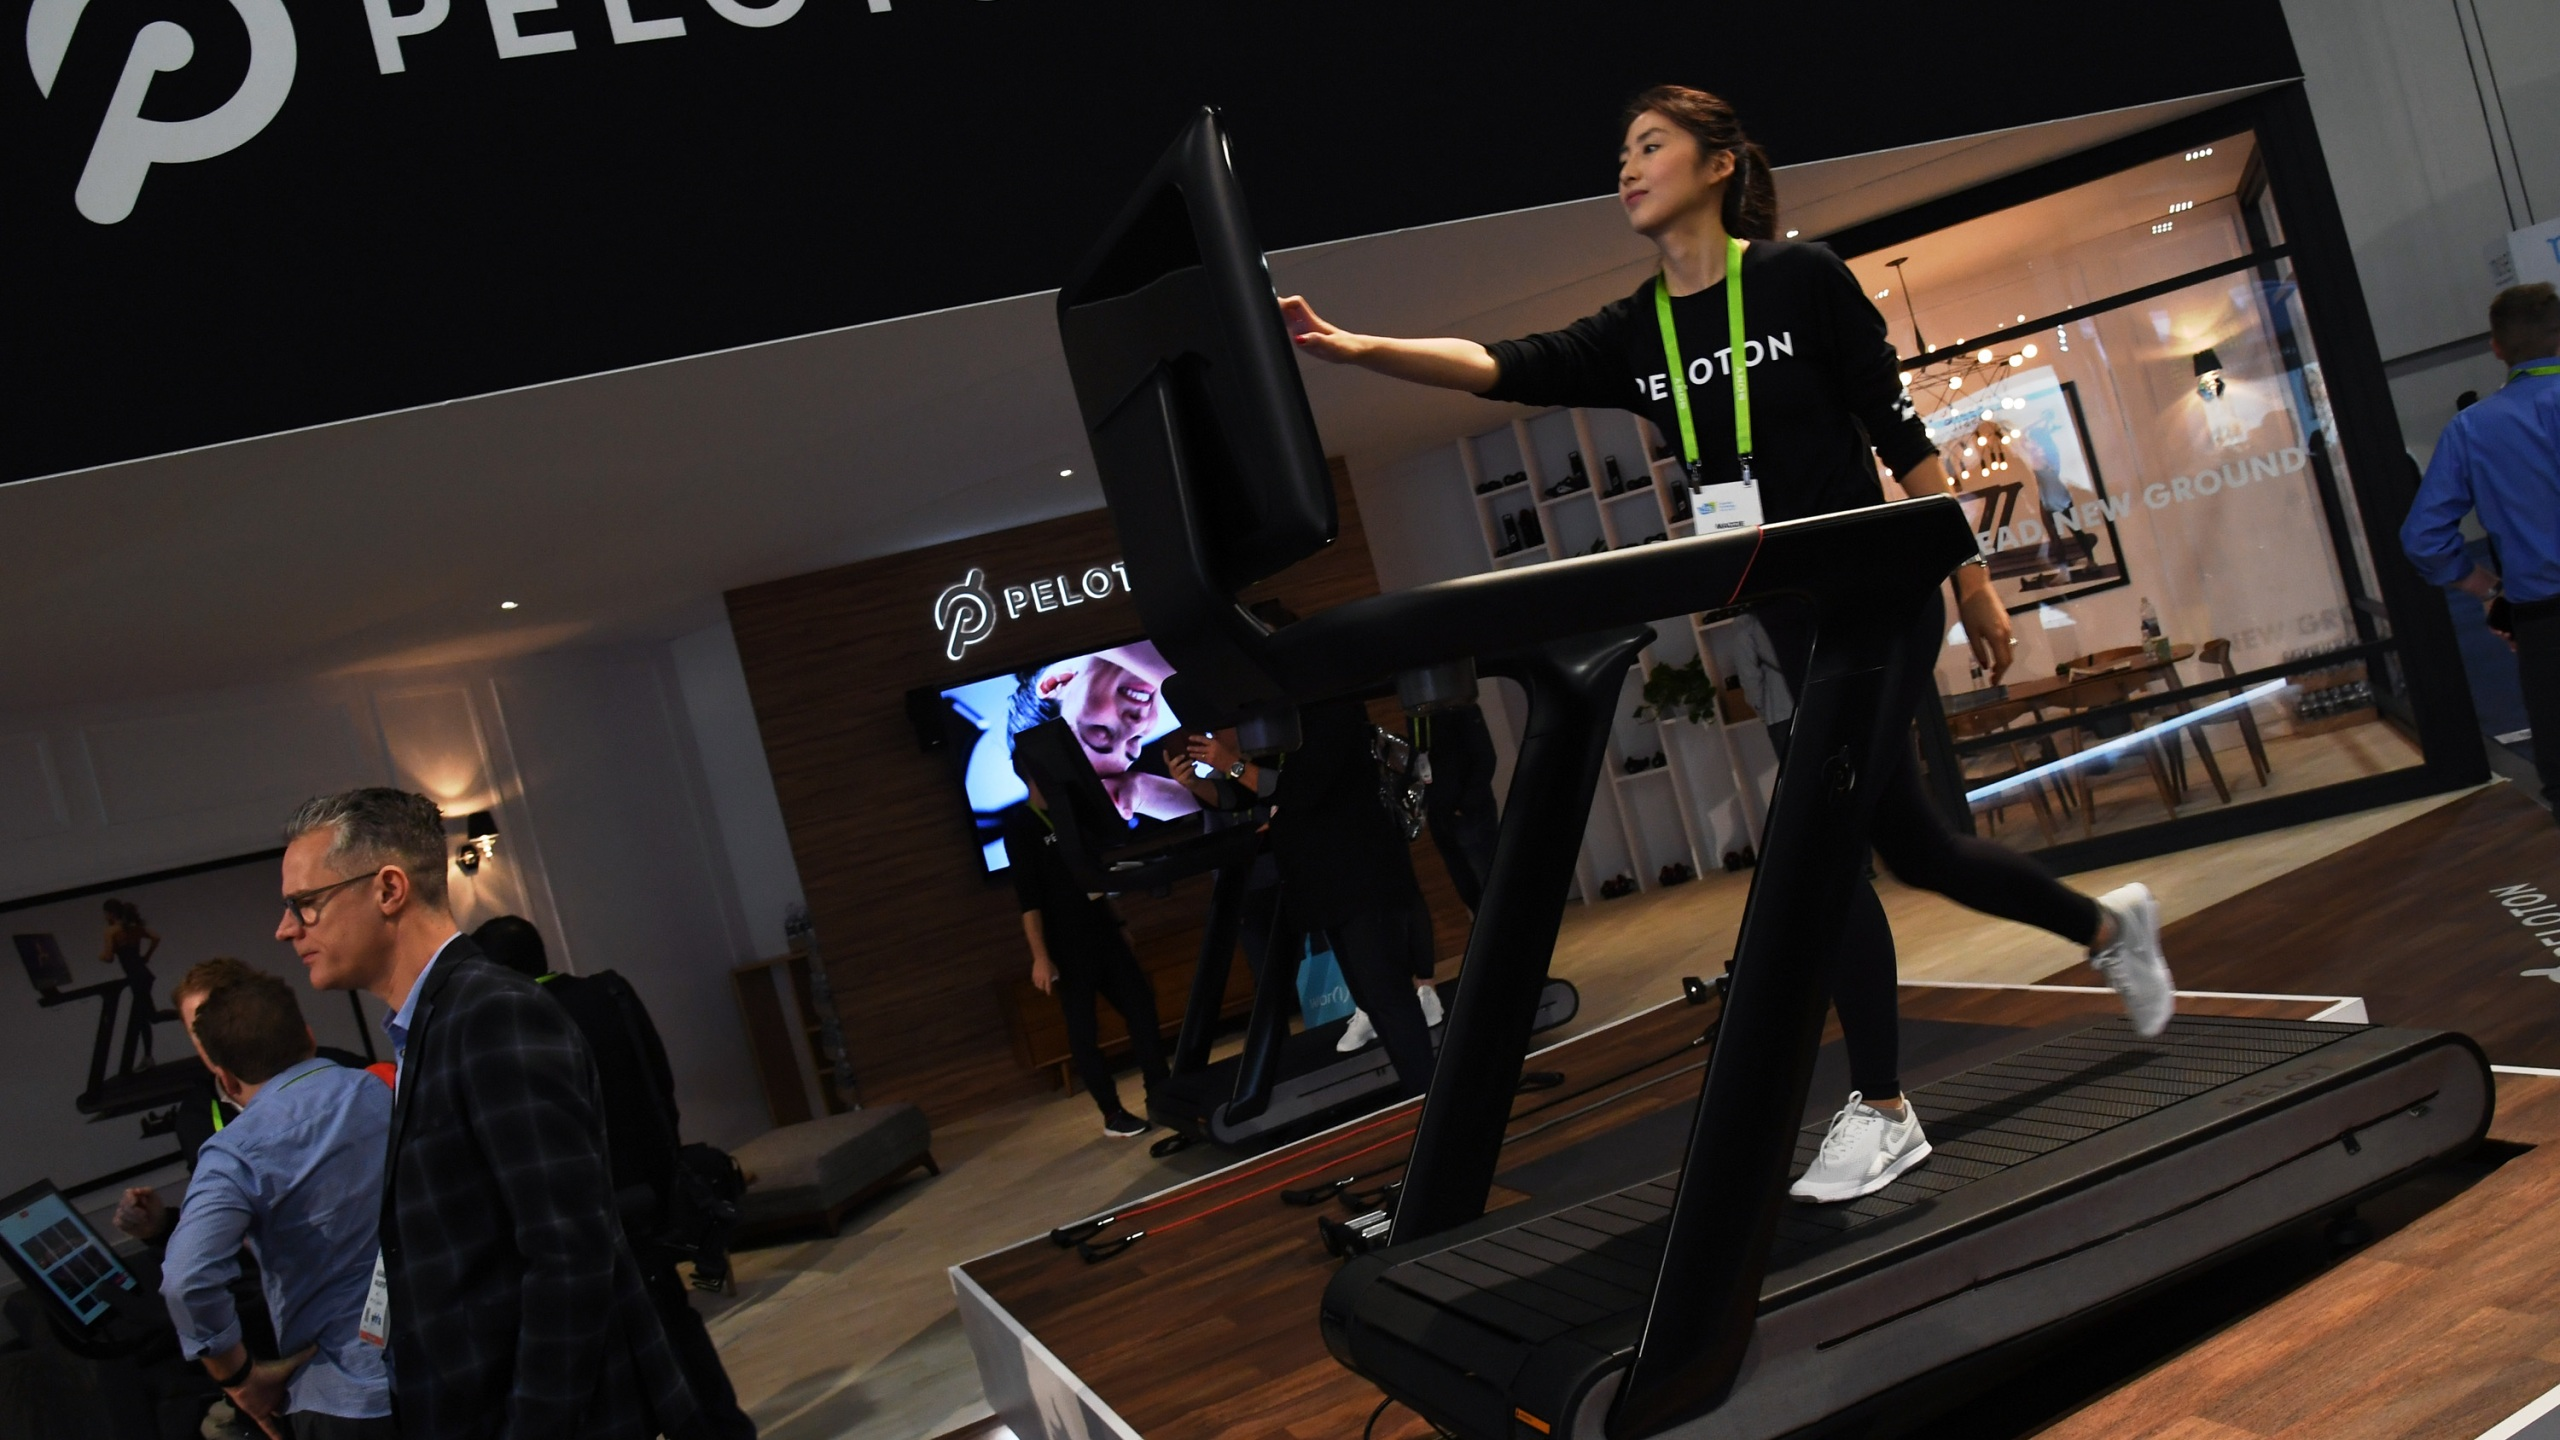 A Peloton Tread treadmill is seen at the Las Vegas Convention Center on Jan. 11, 2018 in Nevada. (Ethan Miller/Getty Images)